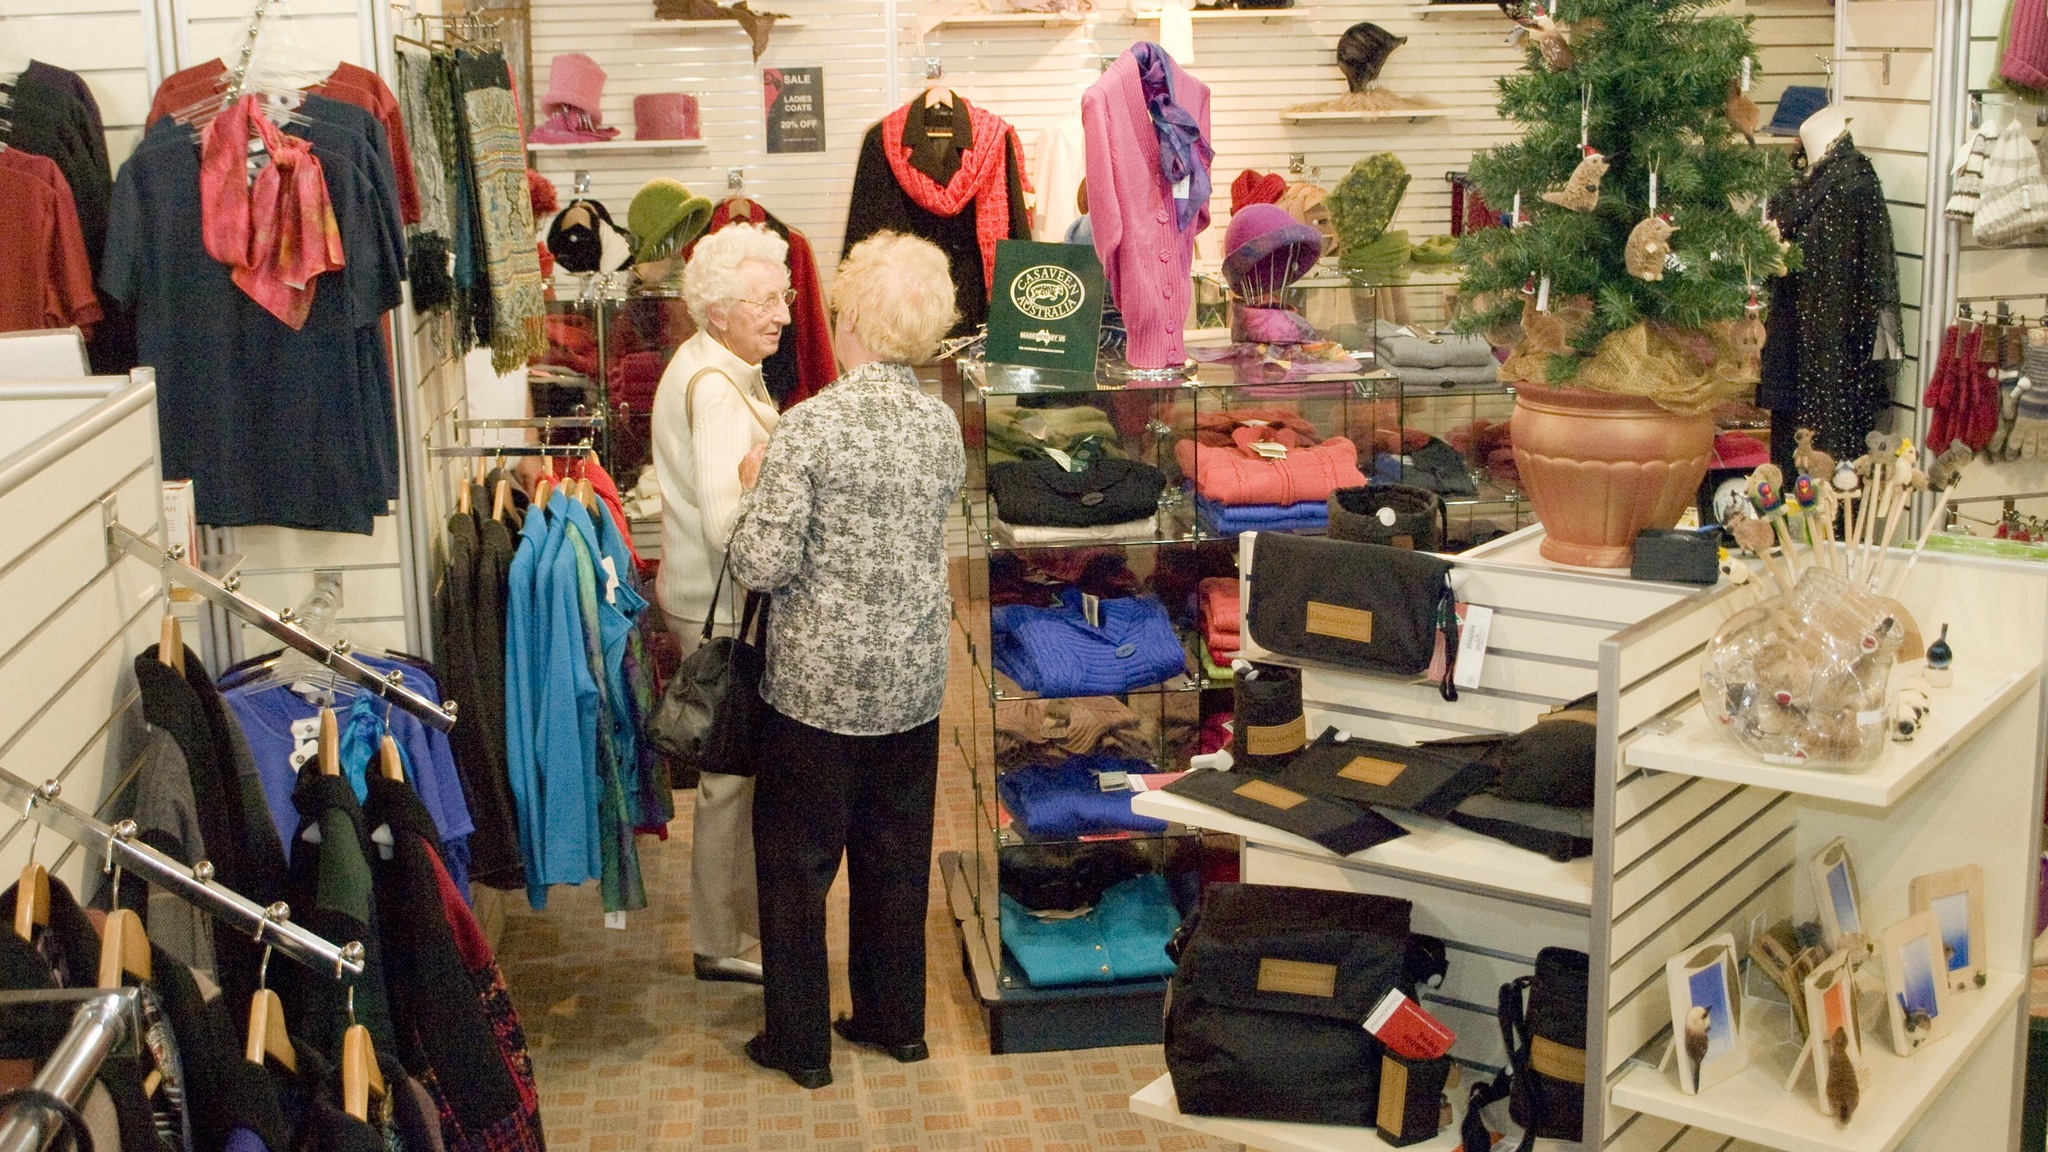 On-site shop stocking quality woollen goods, gifts and souvenirs